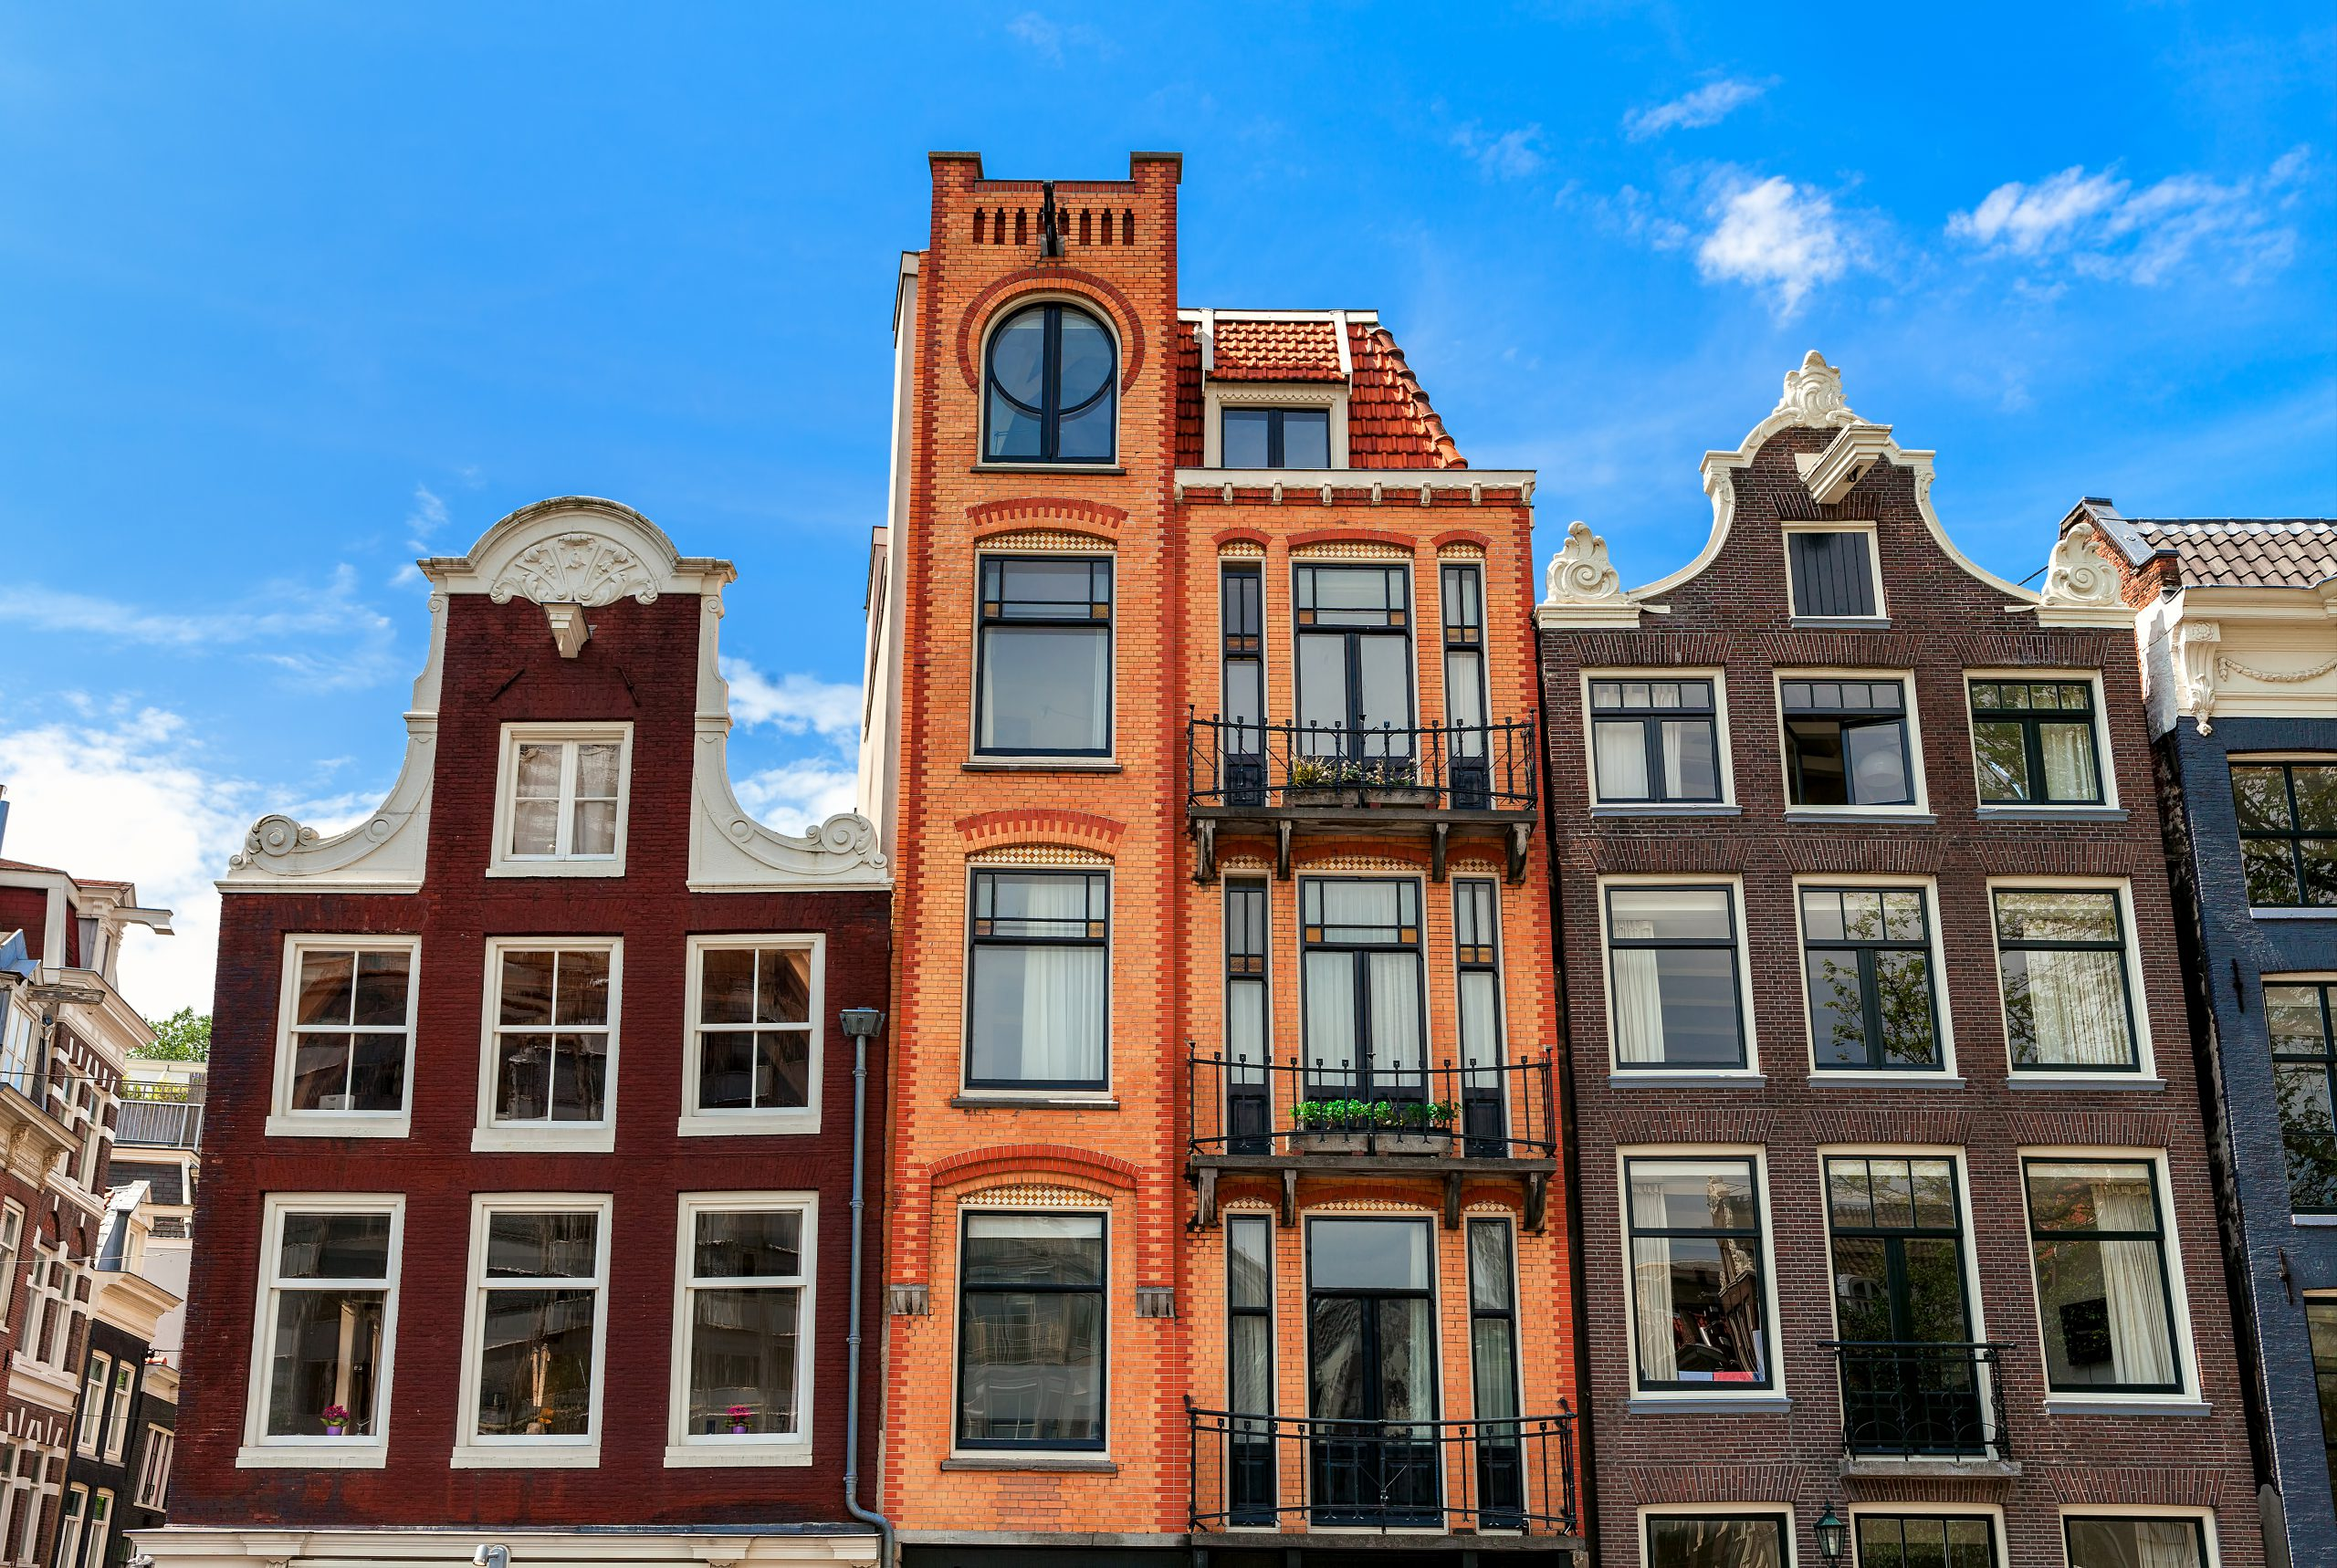 Buying a property as an expat in Europe – the pros and cons